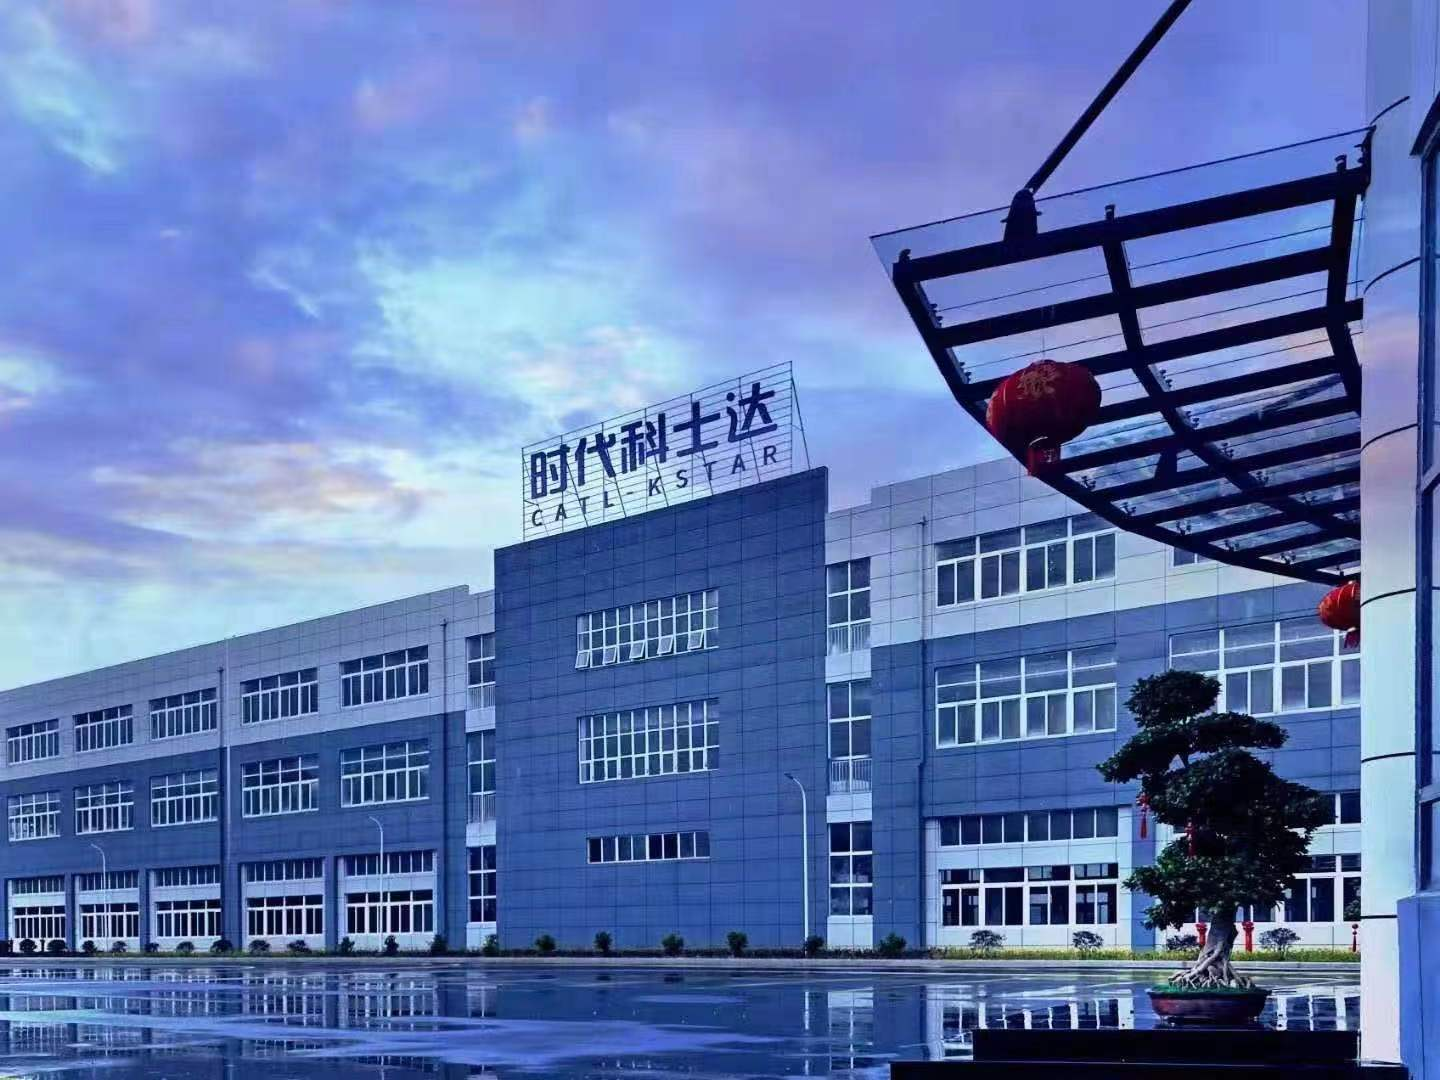 CATL – KSTAR Has Completed New Factory Buiding in China